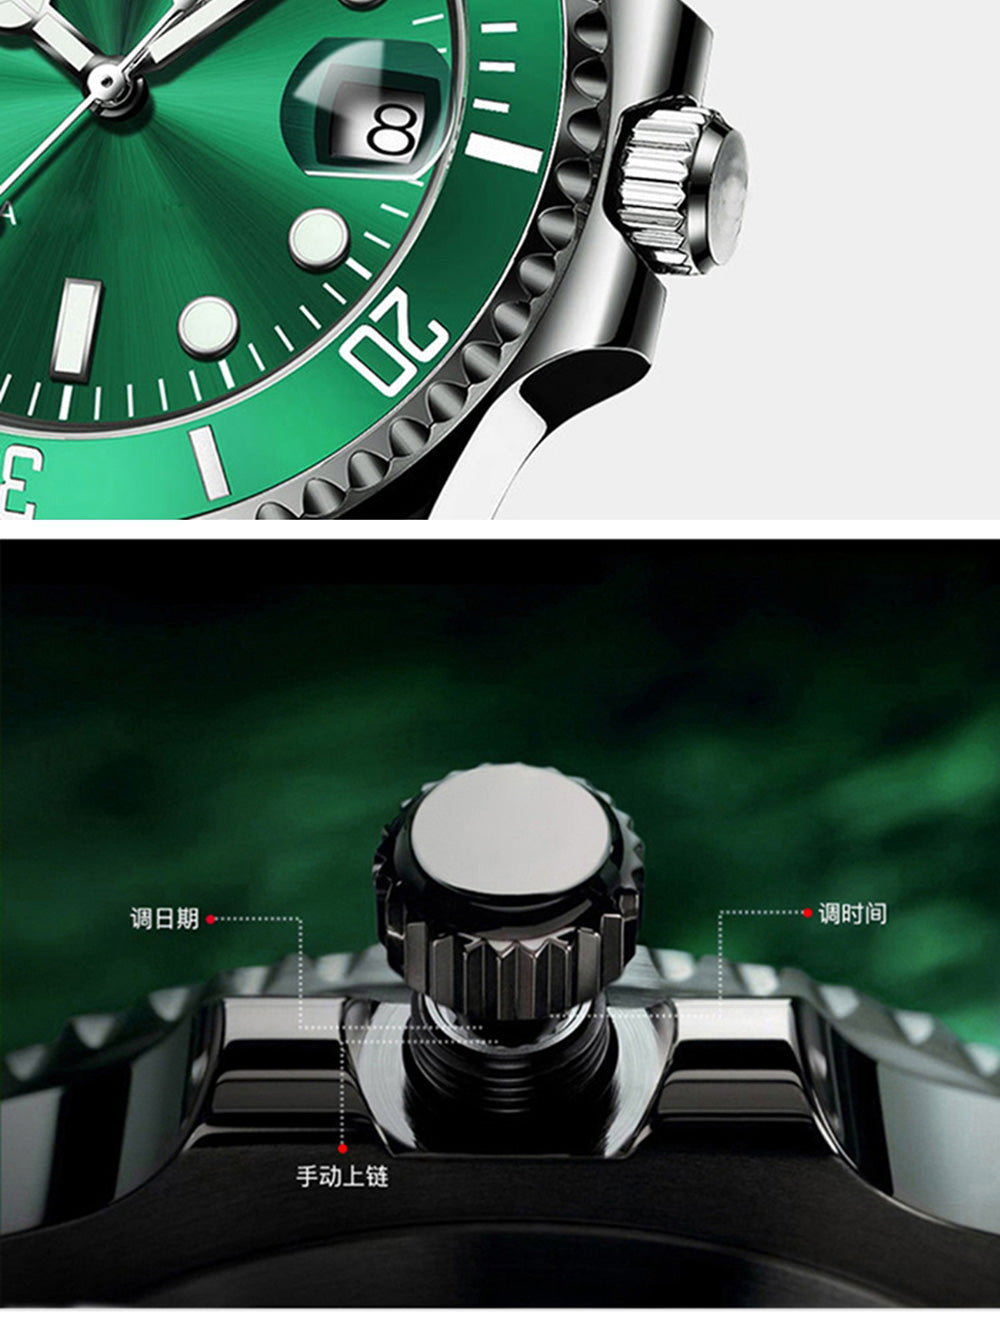 automatic dress watches for men